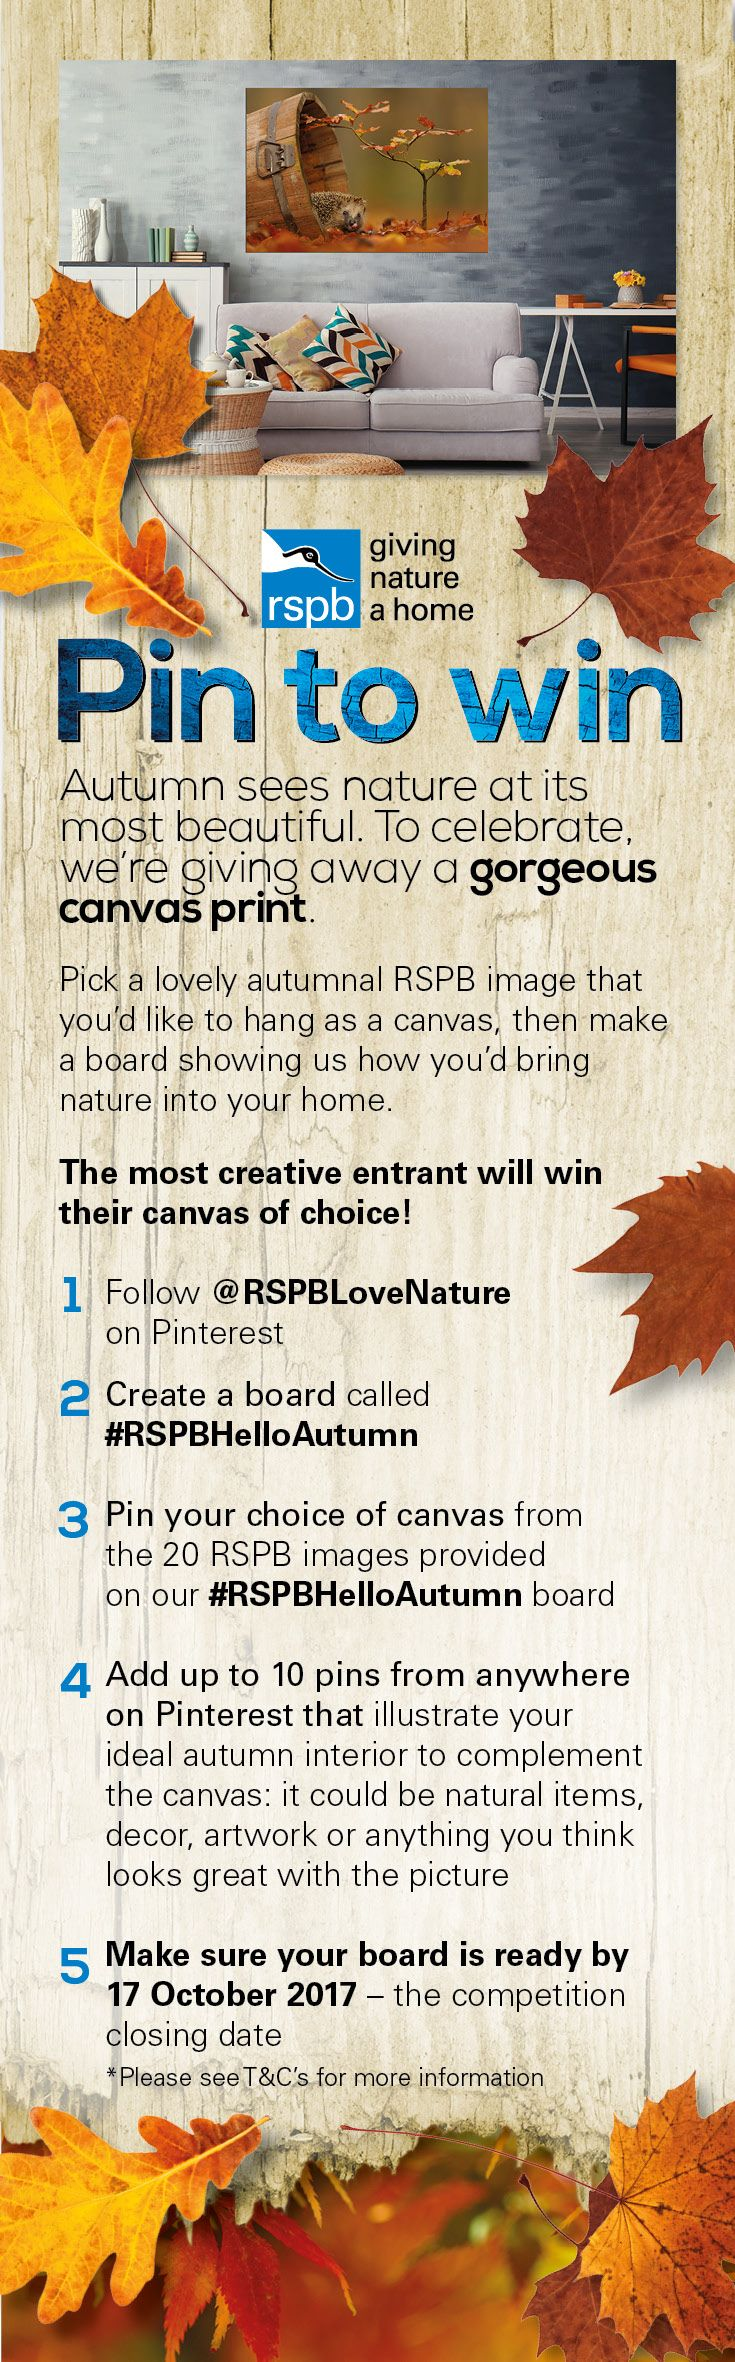 Pin to Win a gorgeous canvas print worth up to £200 – simply create a #RSPBHelloAutumn Pinterest board, pin your choice of canvas from the 20 autumnal images provided on our #RSPBHelloAutumn board and then add in 10 or more pins that illustrate your ideal autumn interior. Closing date 17/10/2017. 2017, Contest, Fun, Photography, Home Inspiration, Giveaway, Competition, Prizes, Autumn, Decor, Aesthetic, Win